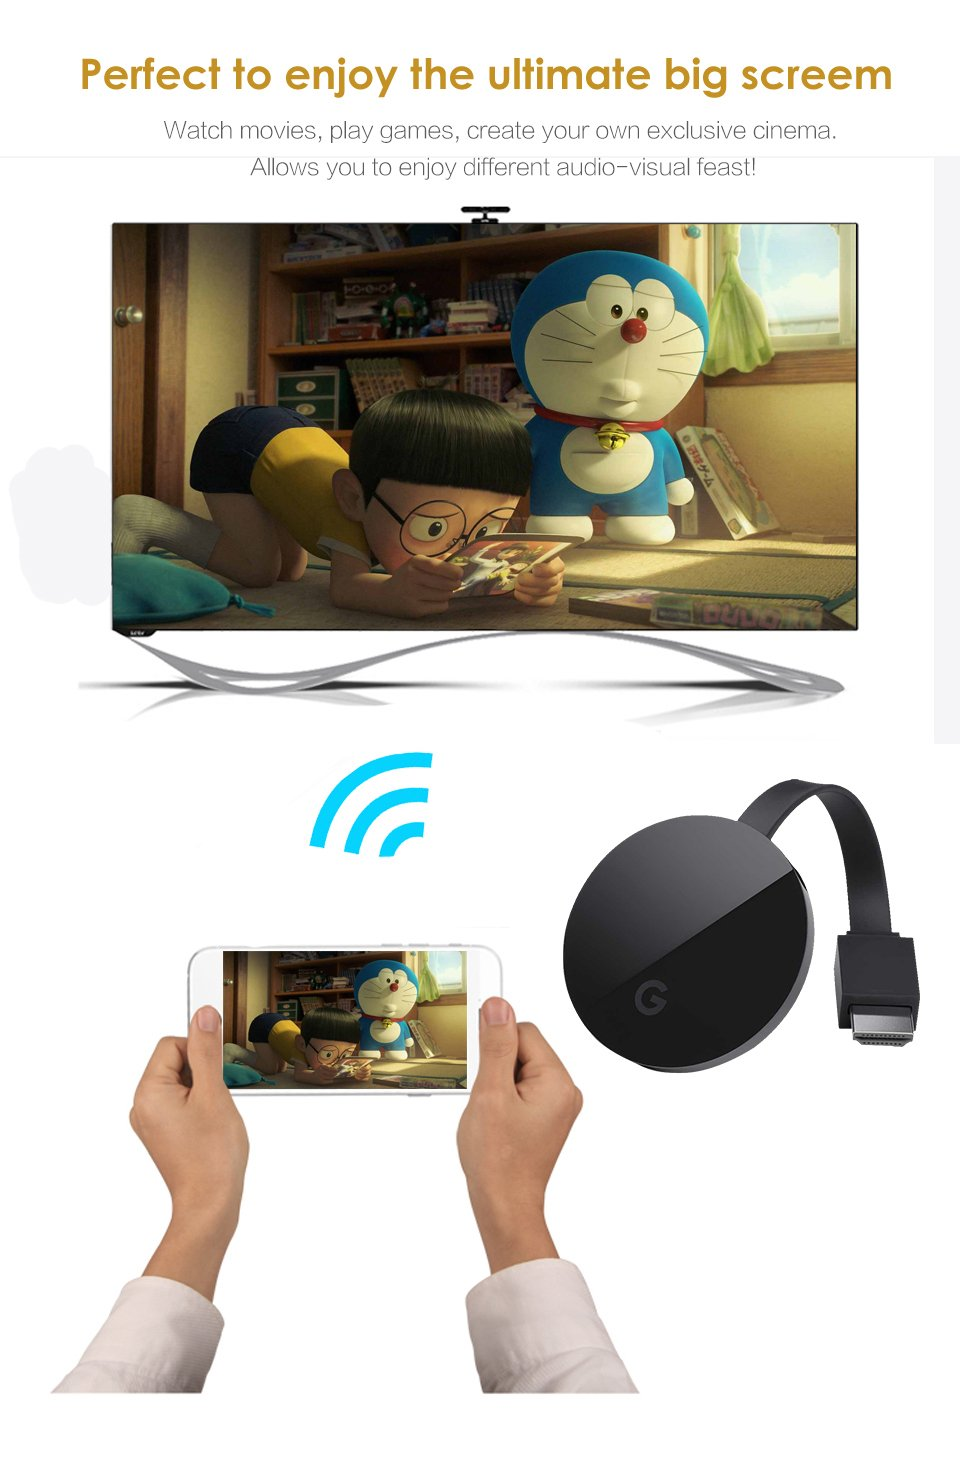 Moveski G5 1080P Wireless Miracast Wifi Display Adapter Display Receiver Screen Mirroring Dongle compatible Airplay Miracast DLNA for iOS and Android Mac Windows8.1/10